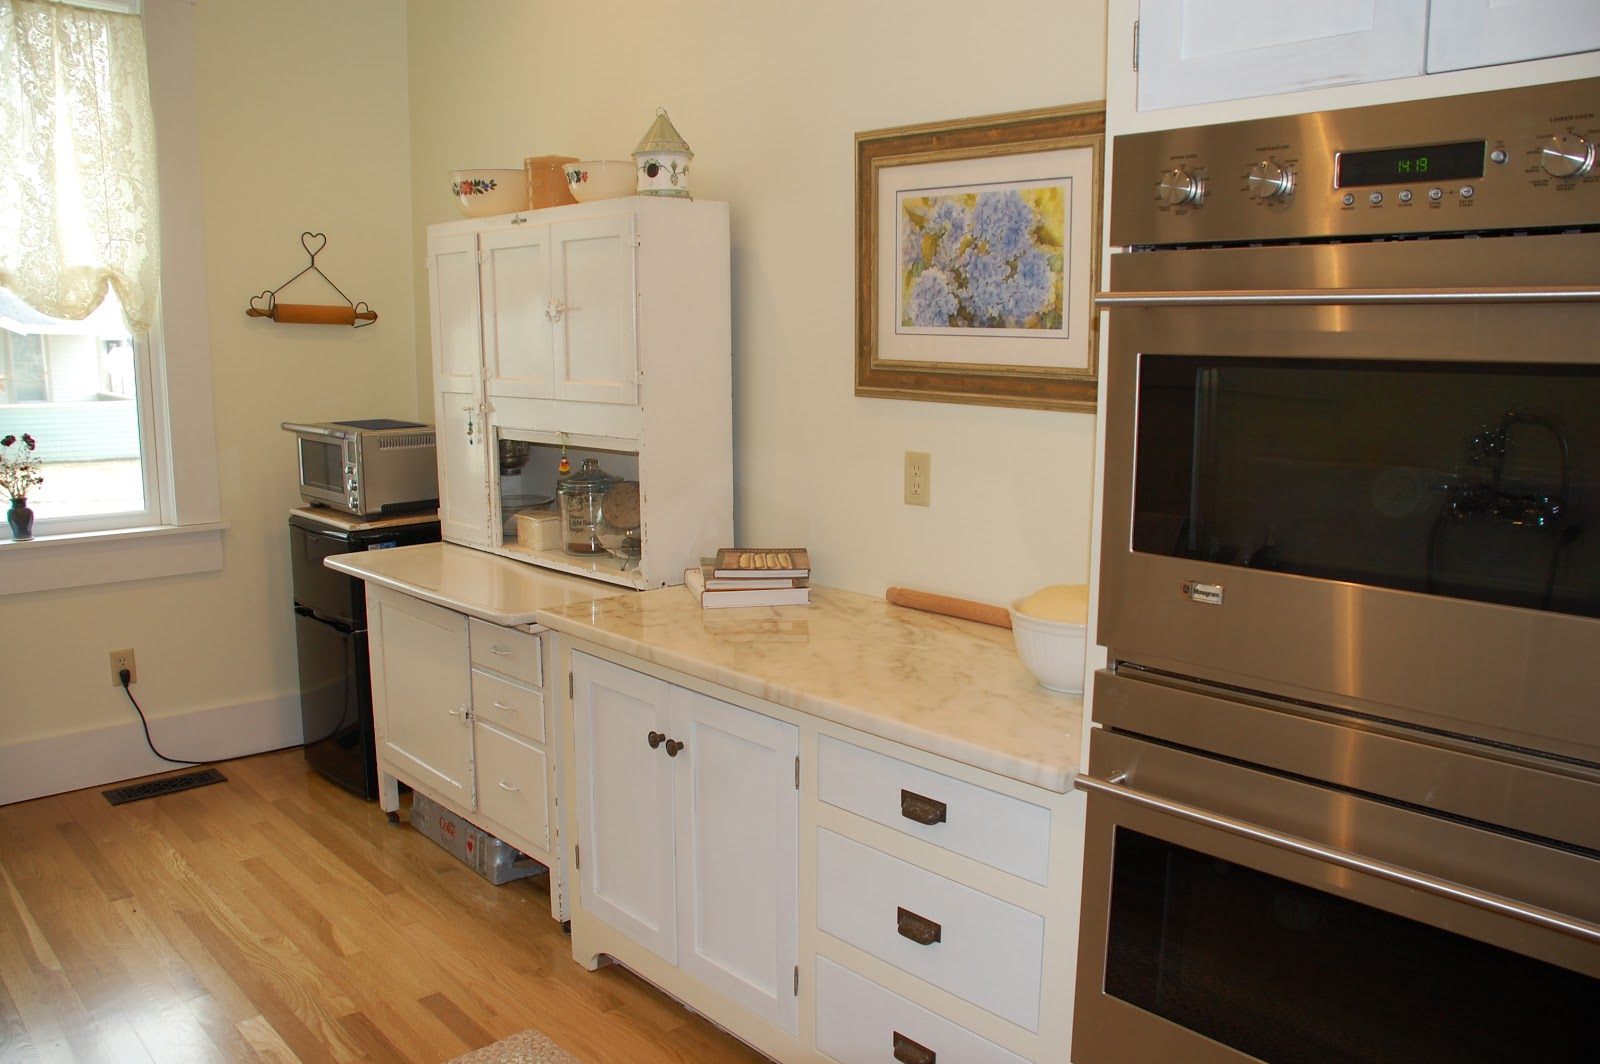 Drawers: Utensils, Parchment Paper, Foil, Baking Trays. Doors: Kitchen Aid  Mixers, Zo Bread Machine Napanee Kitchenet Refrigerator/Freezer, Convection  Oven